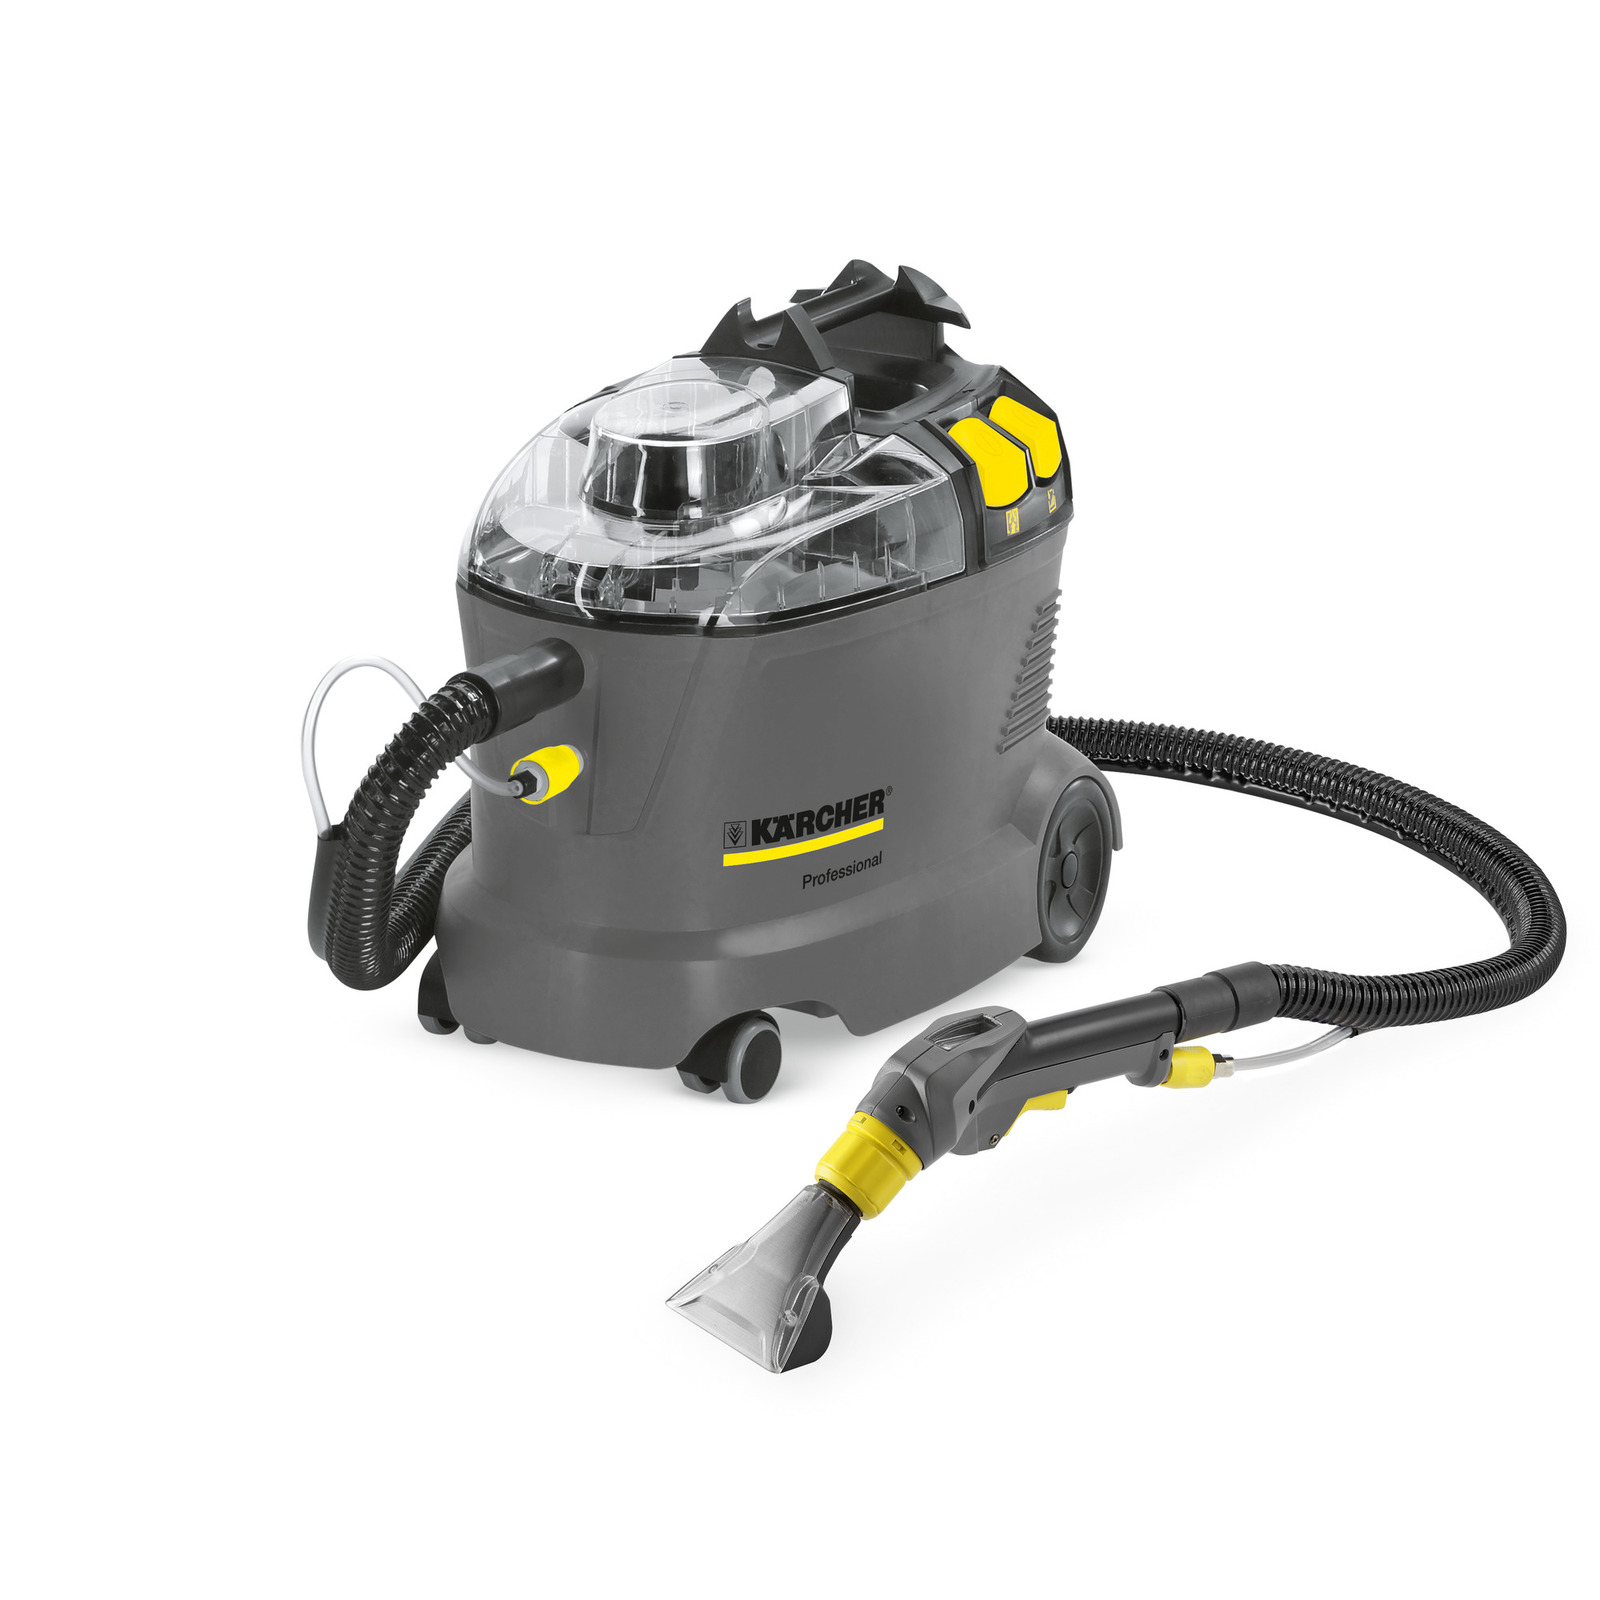 Karcher Puzzi 8/1 C Commercial Carpet Spot Extractor 1.100-228.0 Compact 20 lbs with Hand Tool Half Price Shipping 120 volts